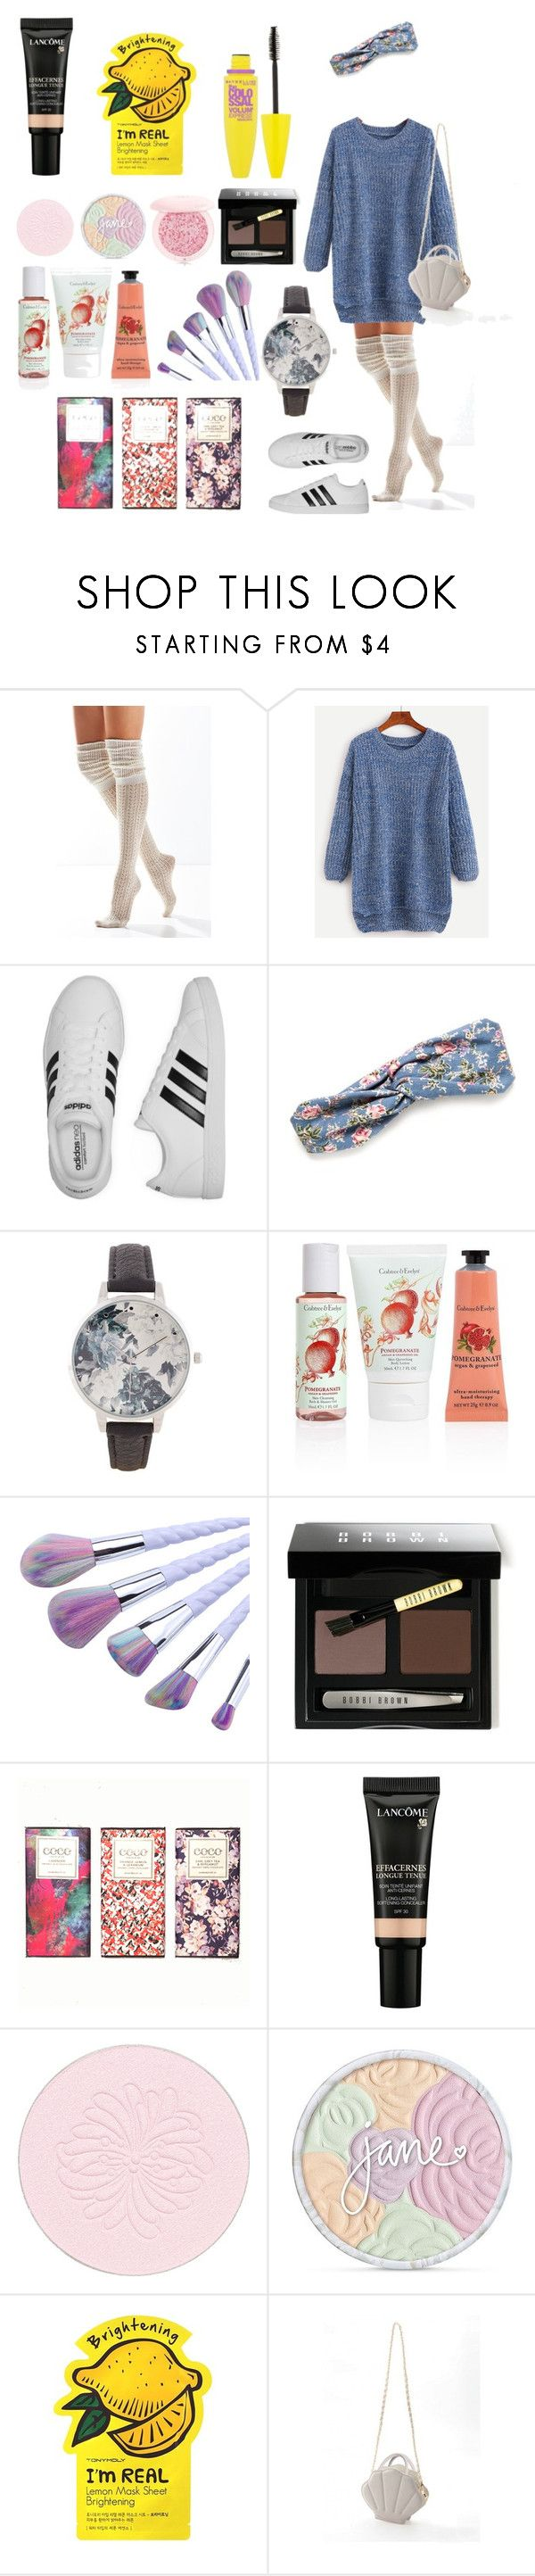 """""""Dreamy: 1"""" by helenasapp on Polyvore featuring Urban Outfitters, adidas, Red Camel, BKE, Crabtree & Evelyn, Bobbi Brown Cosmetics, Lancôme, Paul & Joe, jane and Charlotte Russe"""